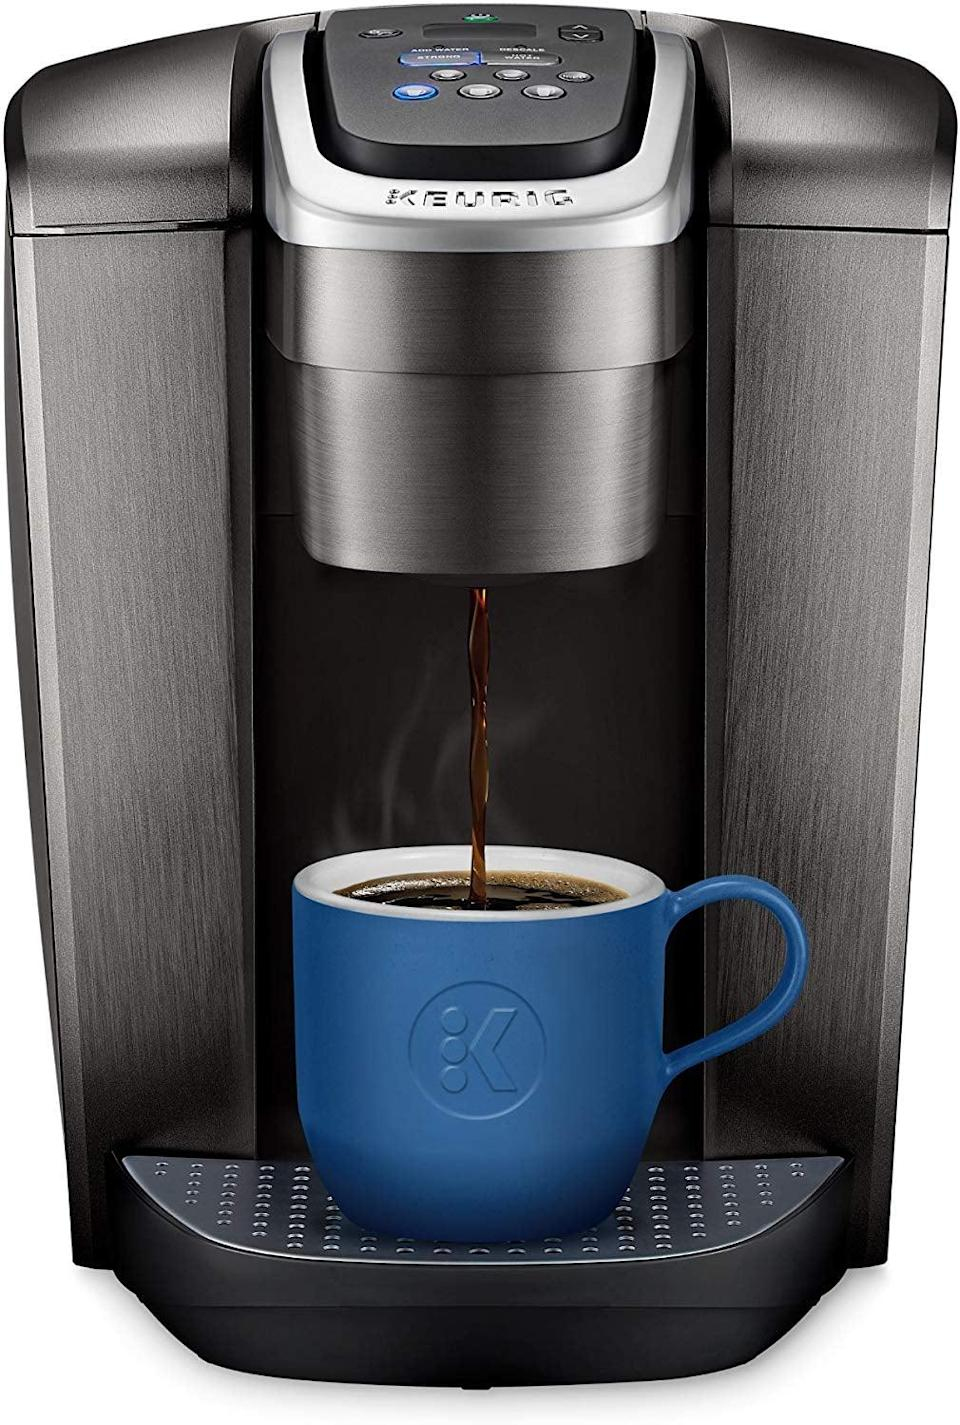 <p>She can enjoy her morning cup of coffee easily with this <span>Keurig Single Serve K-Cup Pod Coffee Maker</span> ($130).</p>